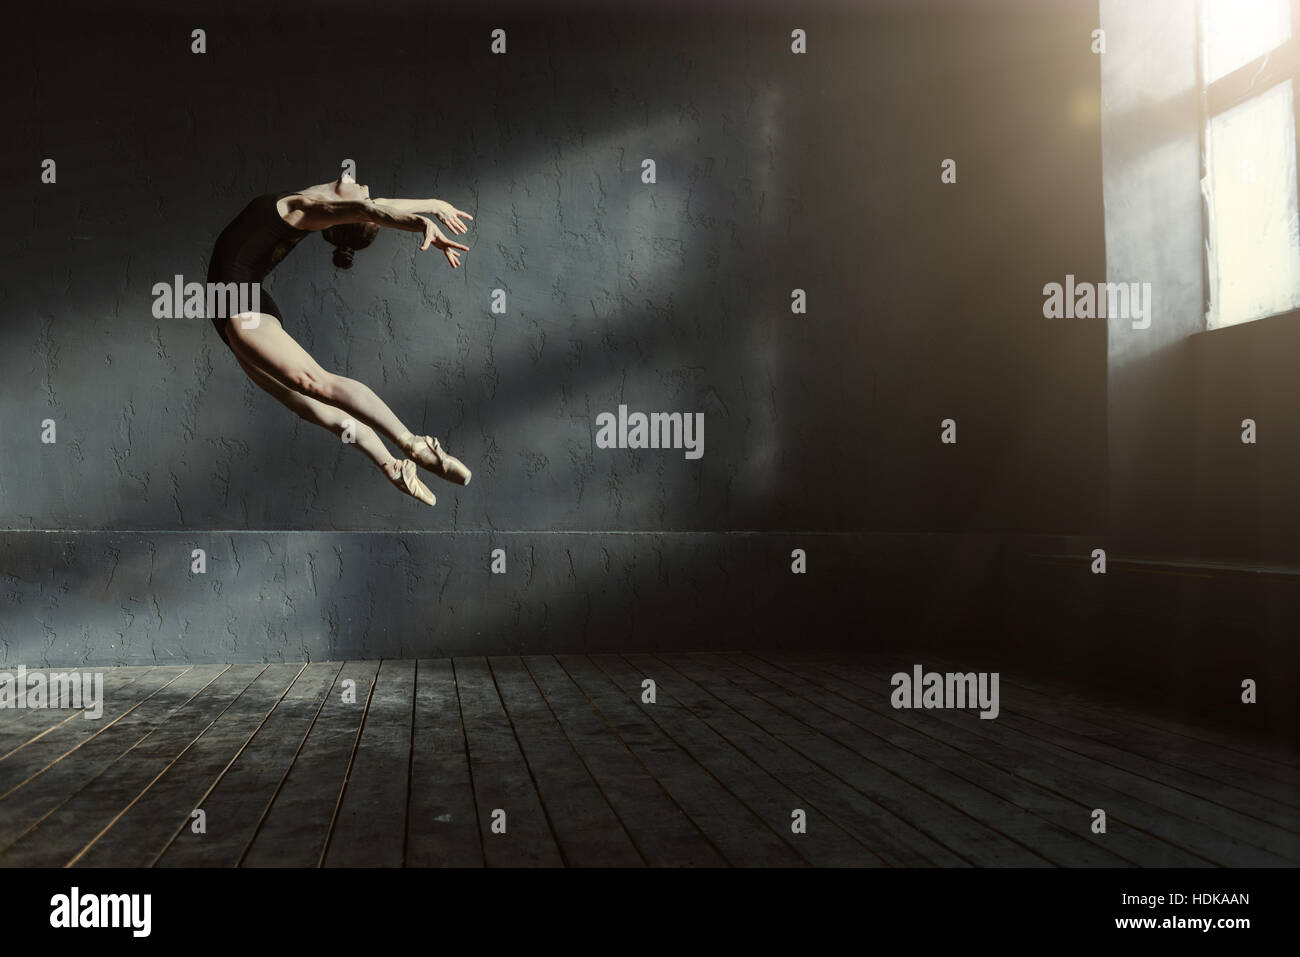 Professional ballet dancer performing in the dark lighted room - Stock Image